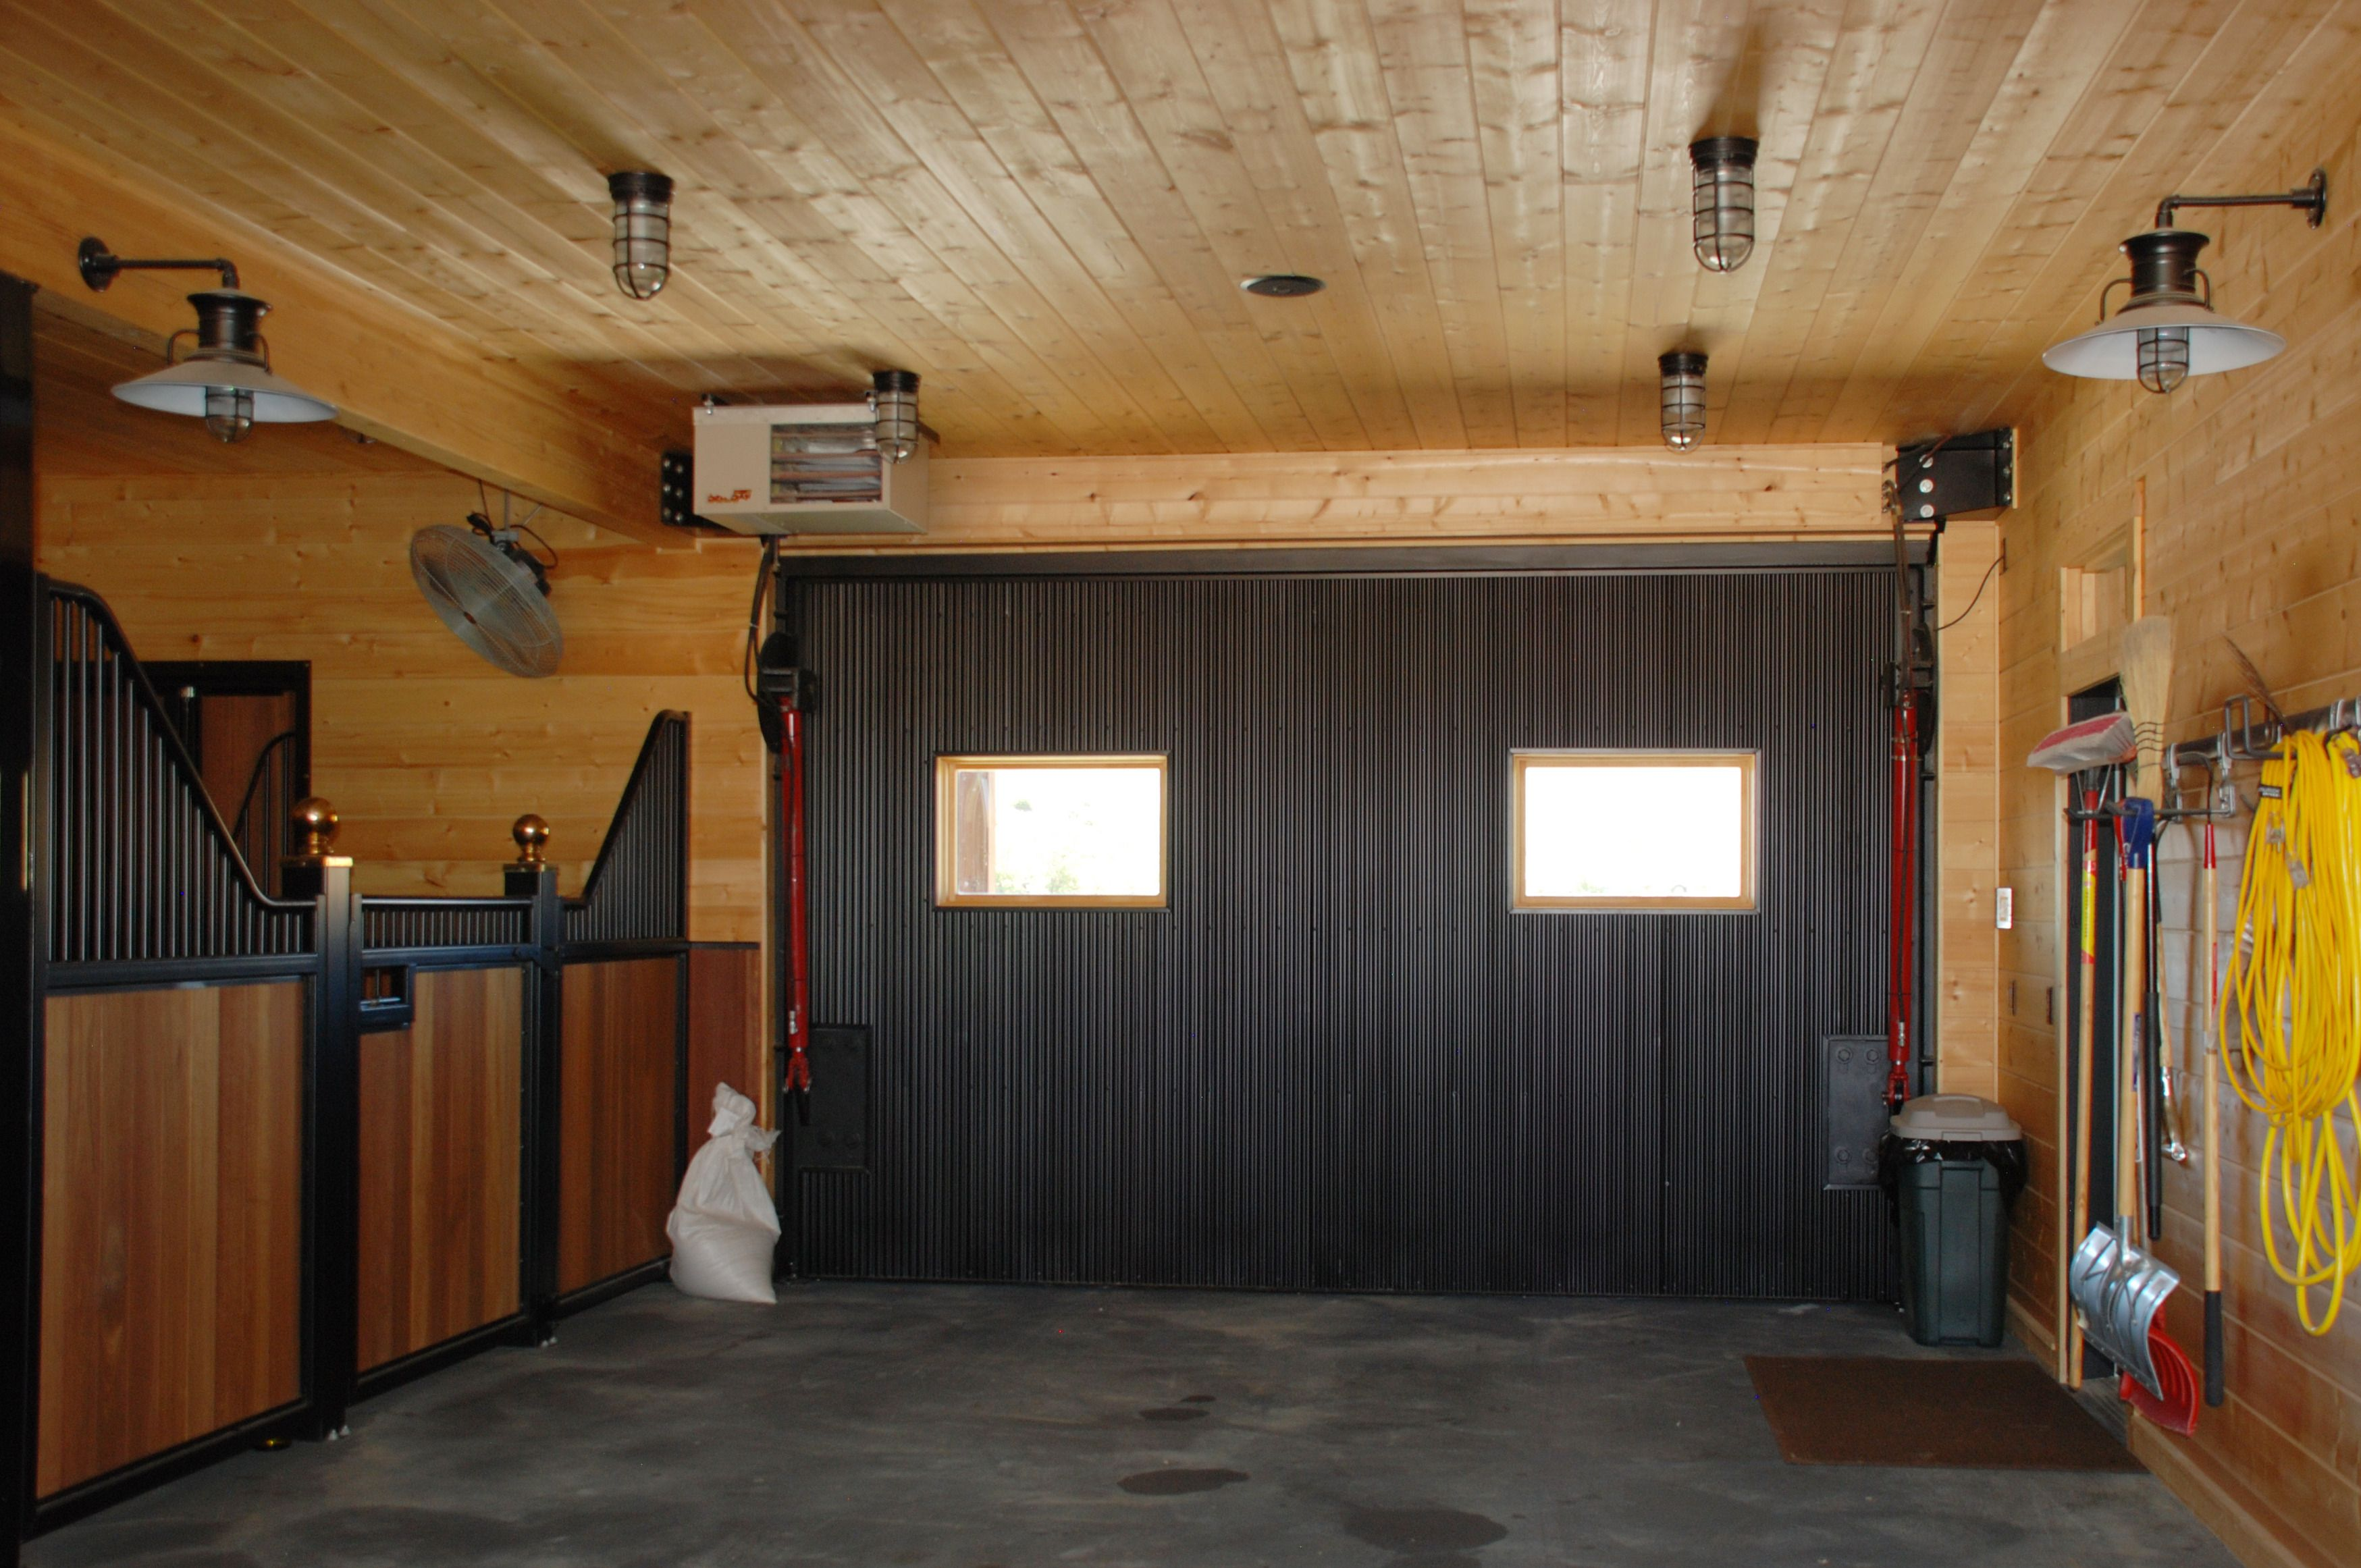 Black Corrugated Metal On The Inside Of The Garage Door Amps Up The Design In This Space Home Design Decor House Design Garage Interior